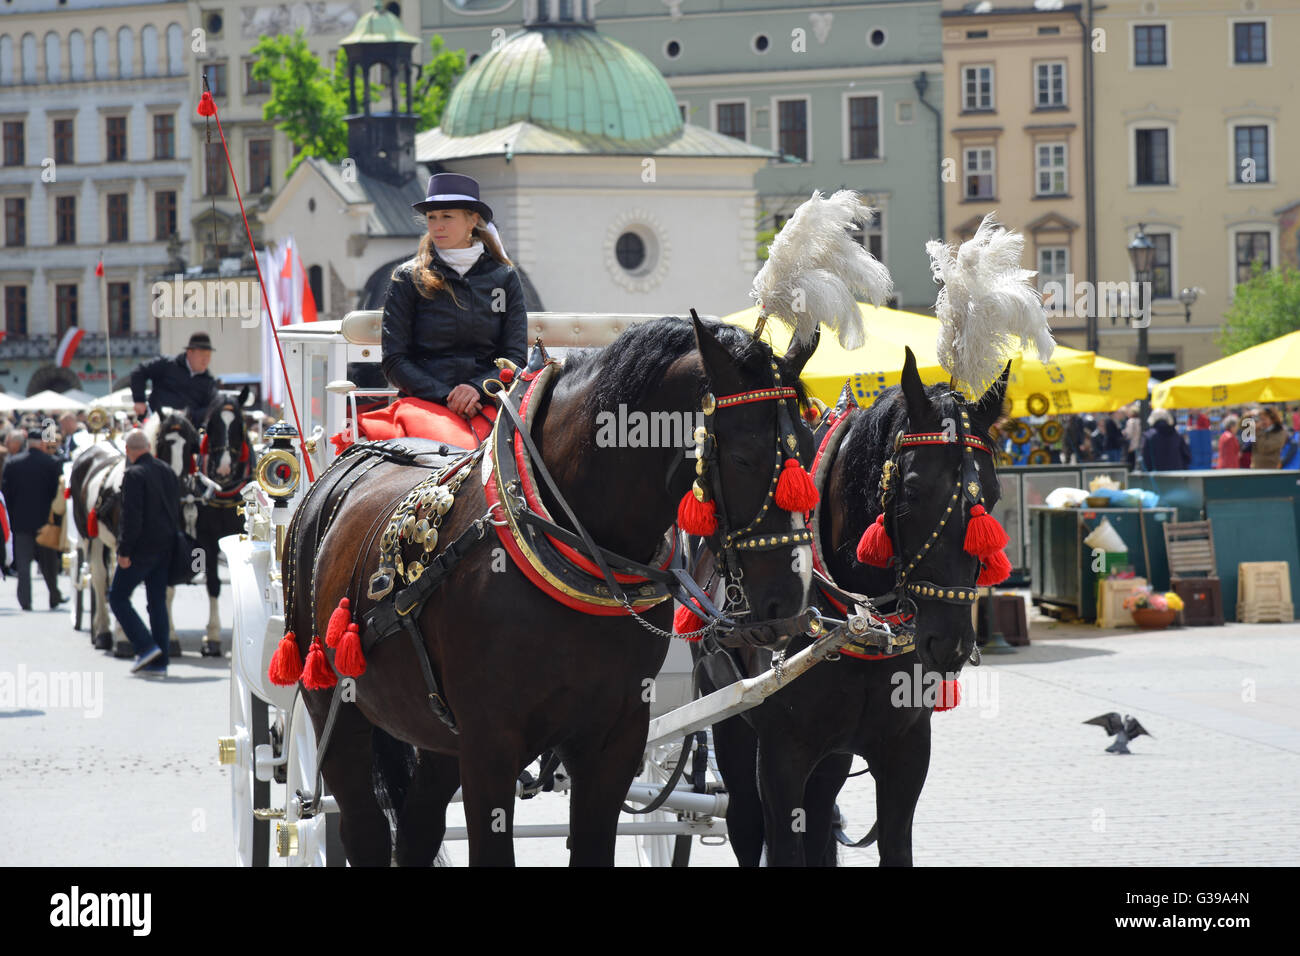 Beautifully decorated horses and a coach on Krakows famous market place Rynek, Church of St. Adalbert in the background. - Stock Image